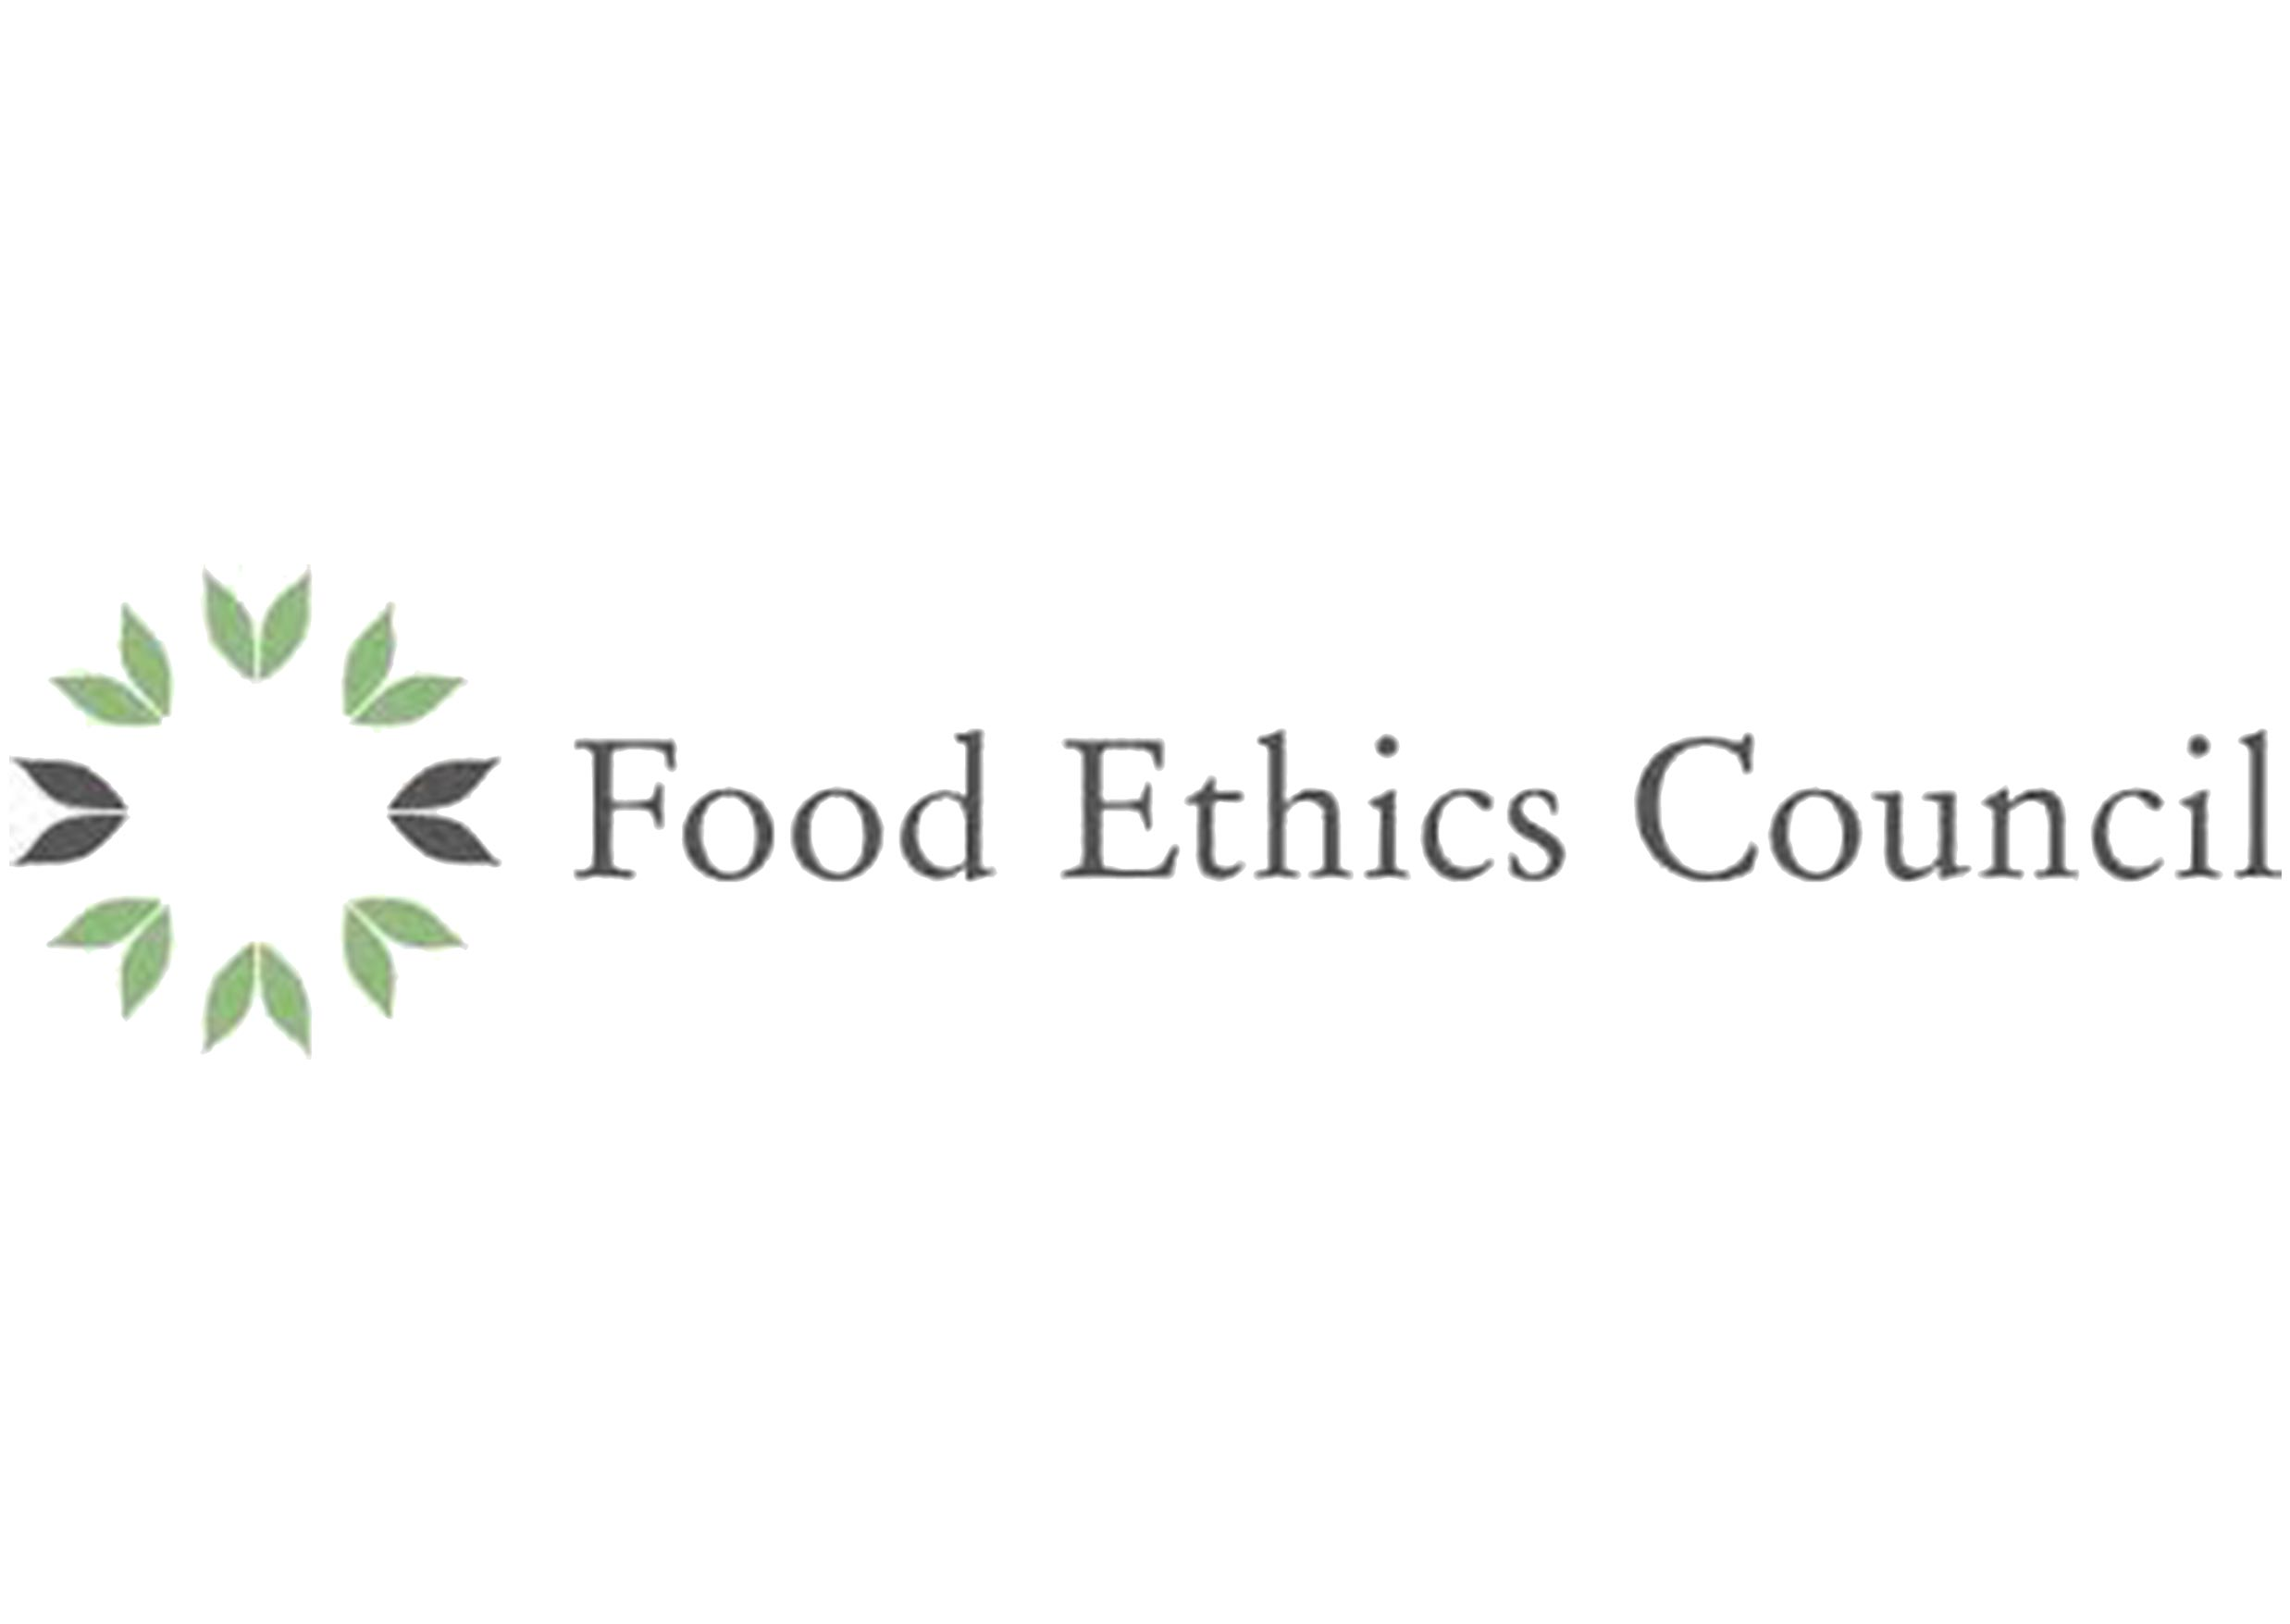 15. Food Ethics Council